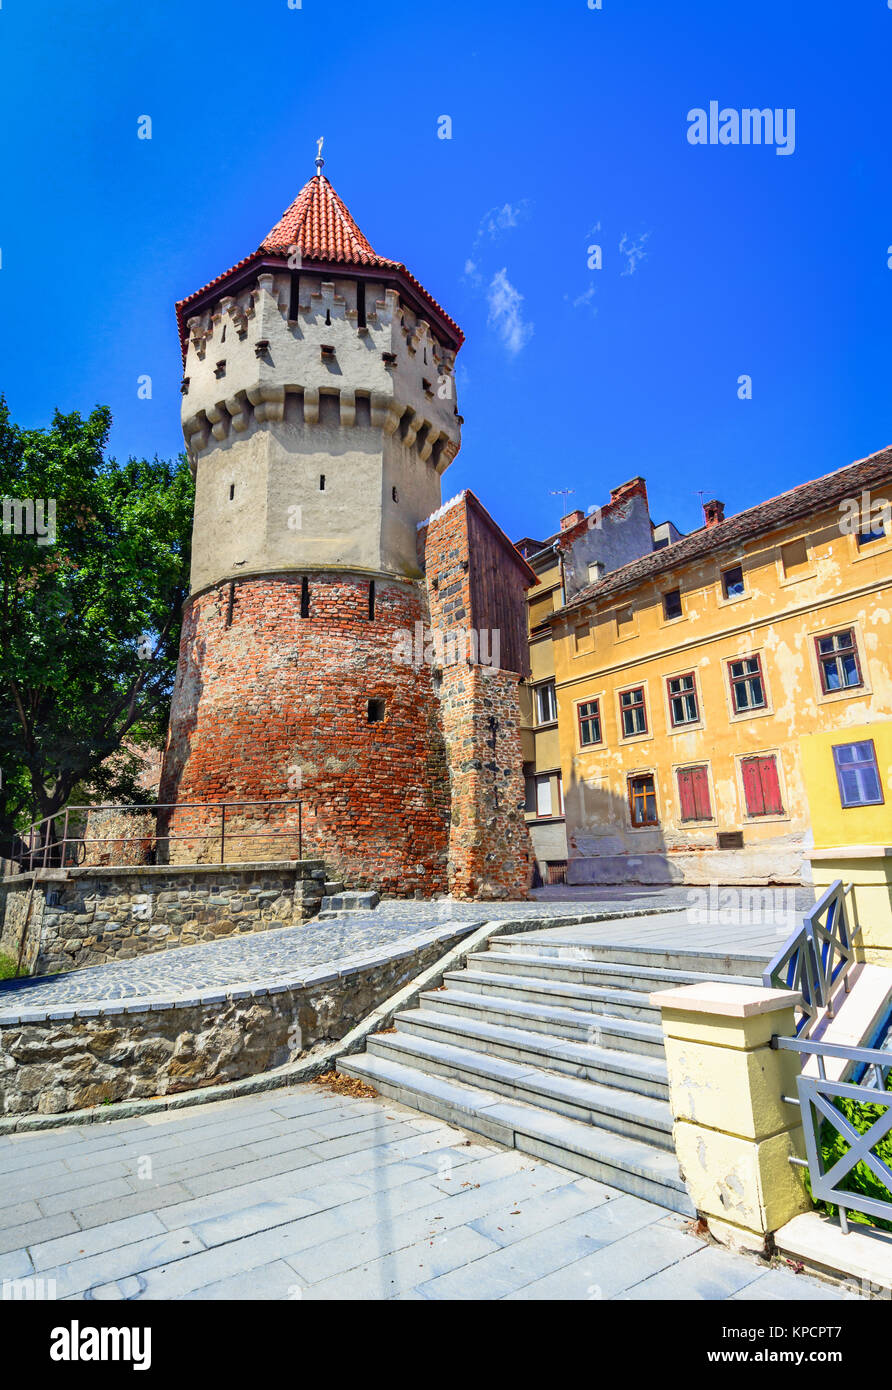 Sibiu, Romania : The famous Tower of the Carpenters - on the Cetatii street in a beautifull day - Stock Image